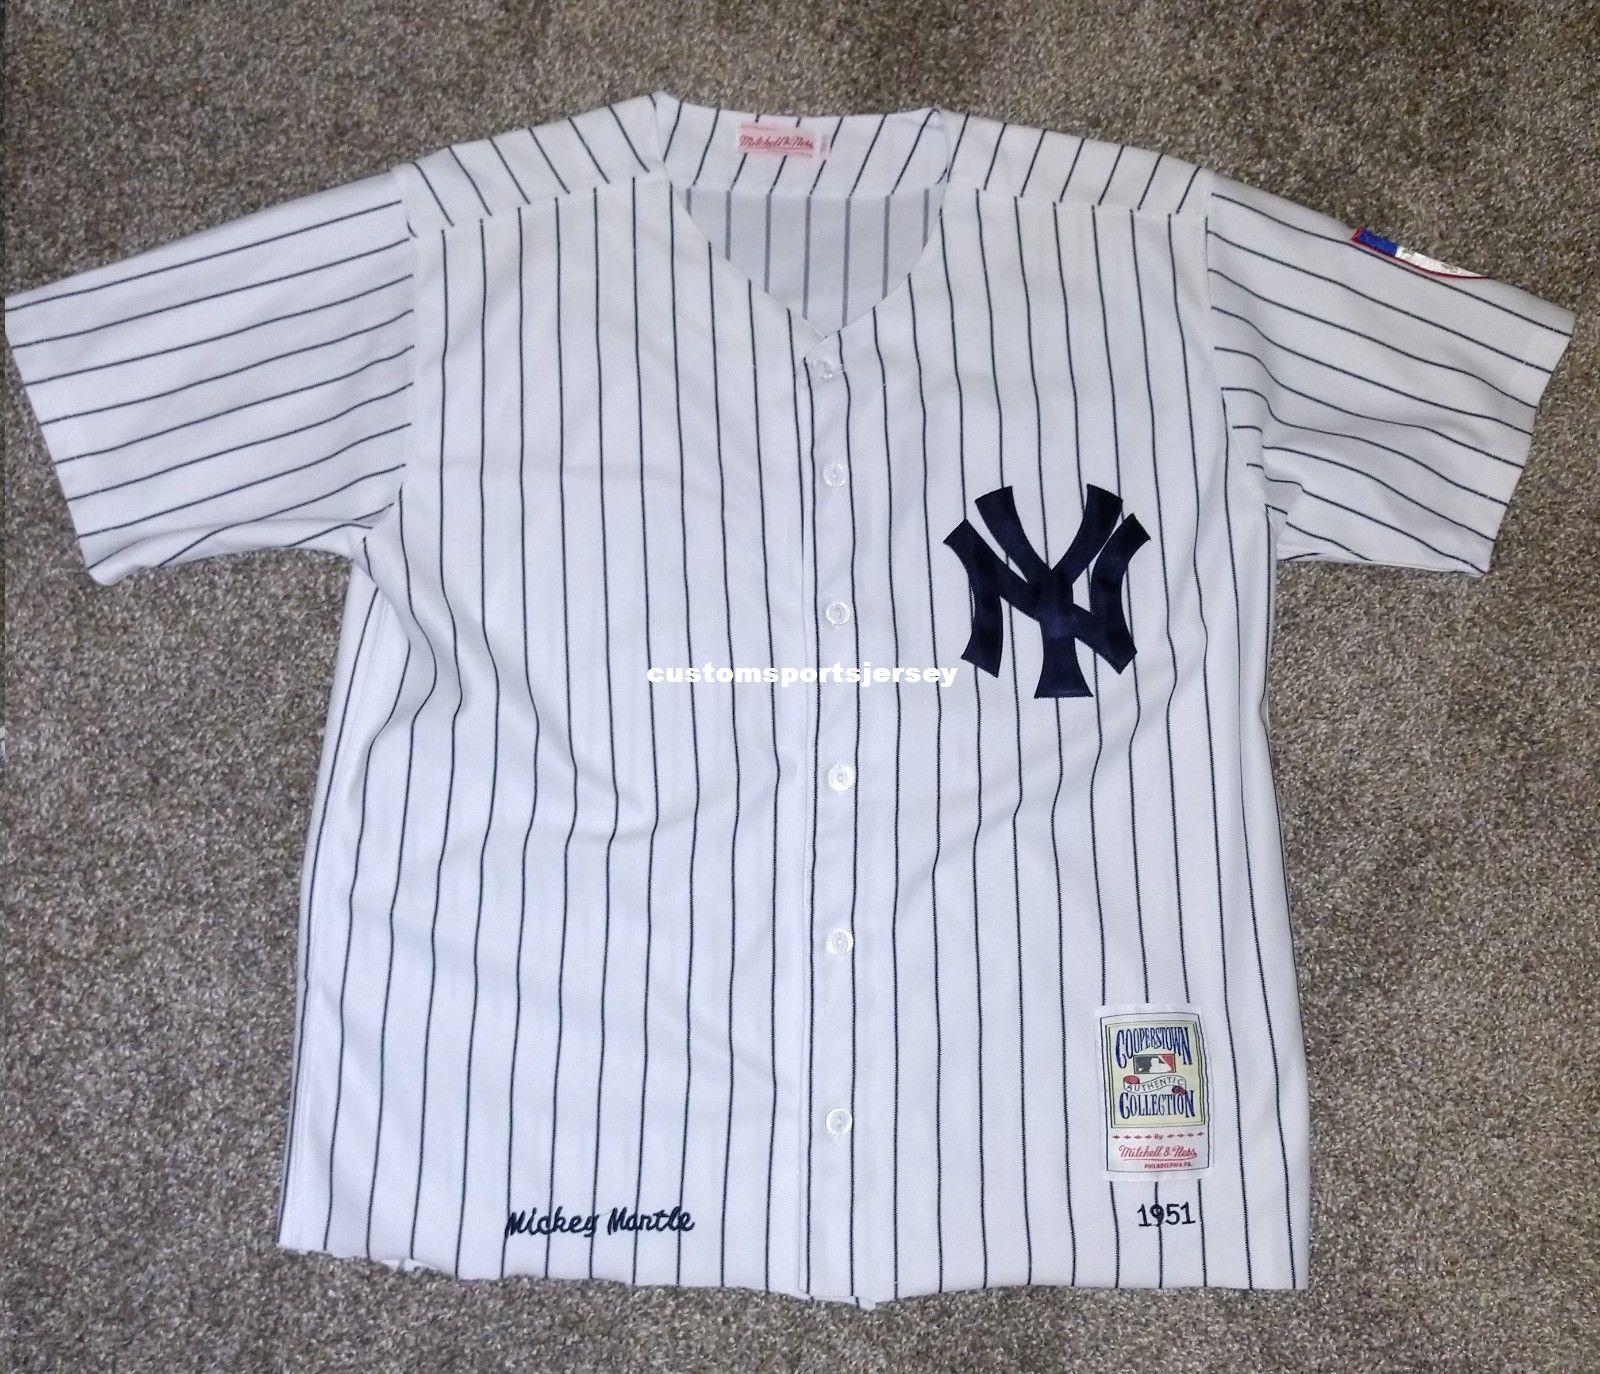 2018 Cheap 1951 Mickey Mantle Jersey Stitched Customize Any Number Name MEN  WOMEN YOUTH XS 5XL From Customsportsjersey a9ec7fe620a